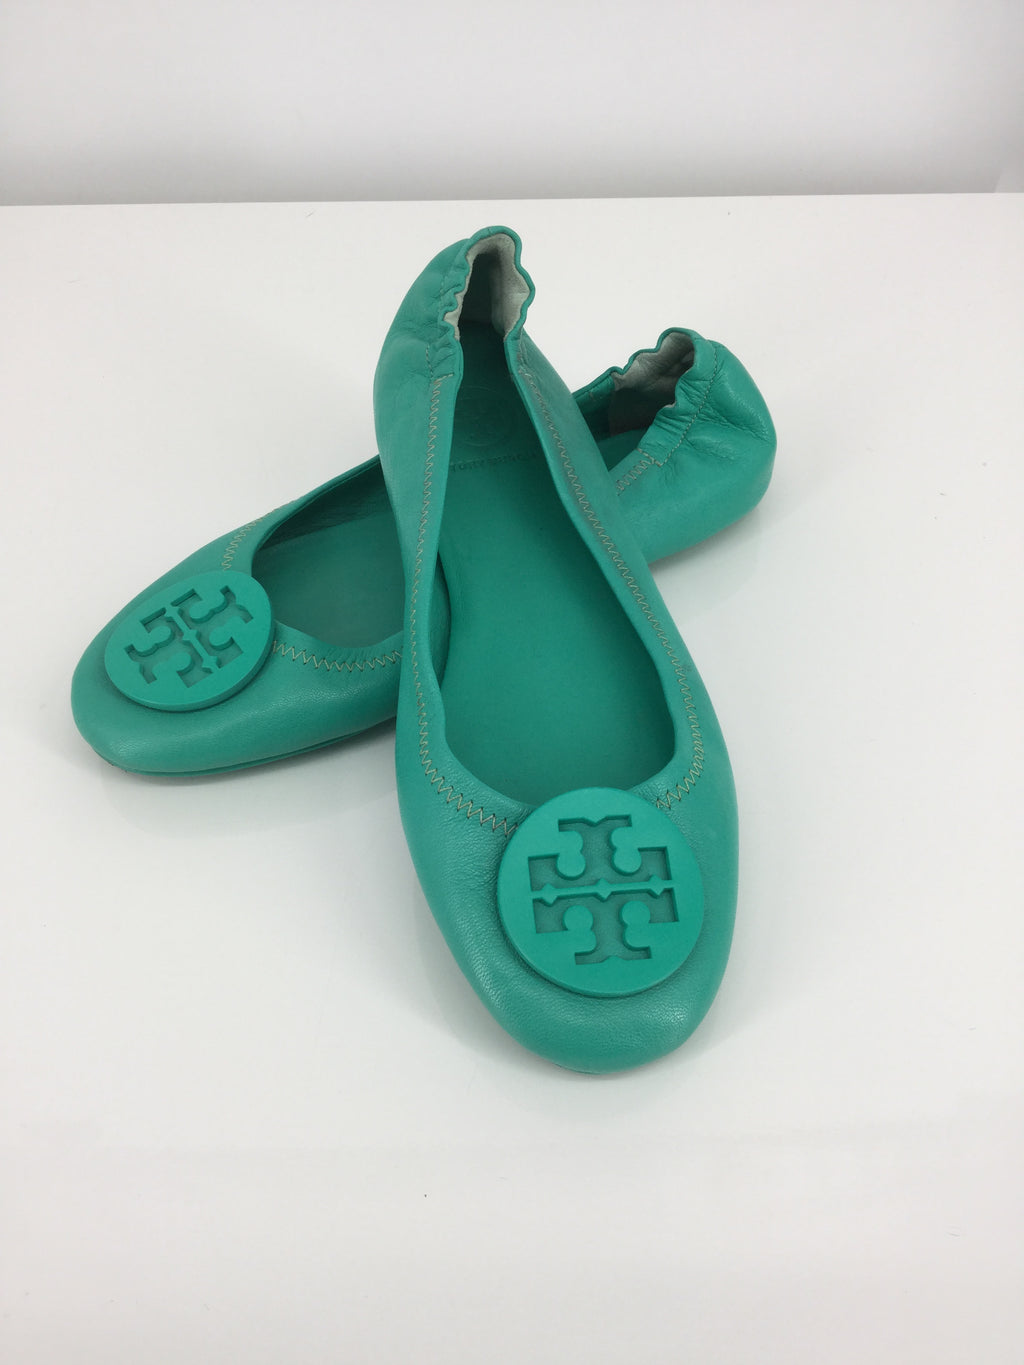 Tory Burch Shoes Flats